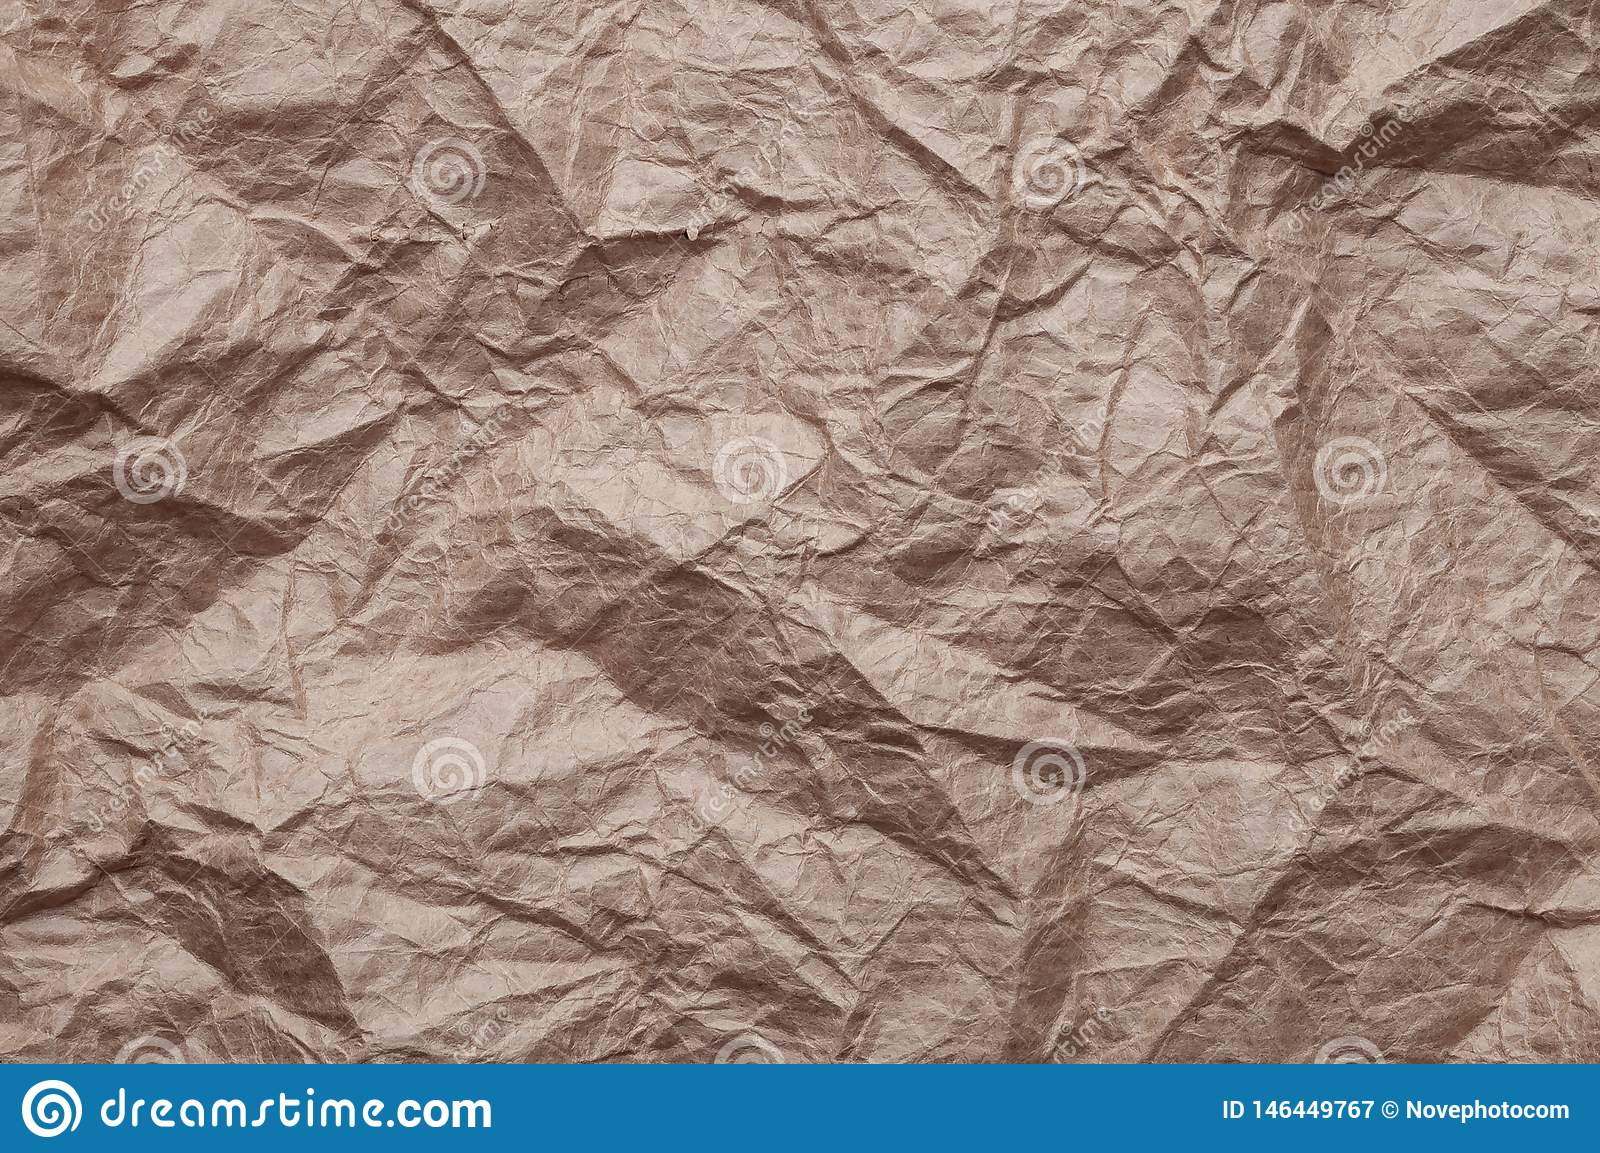 Crumpled kraft paper. Texture crumpled recycled old brown paper